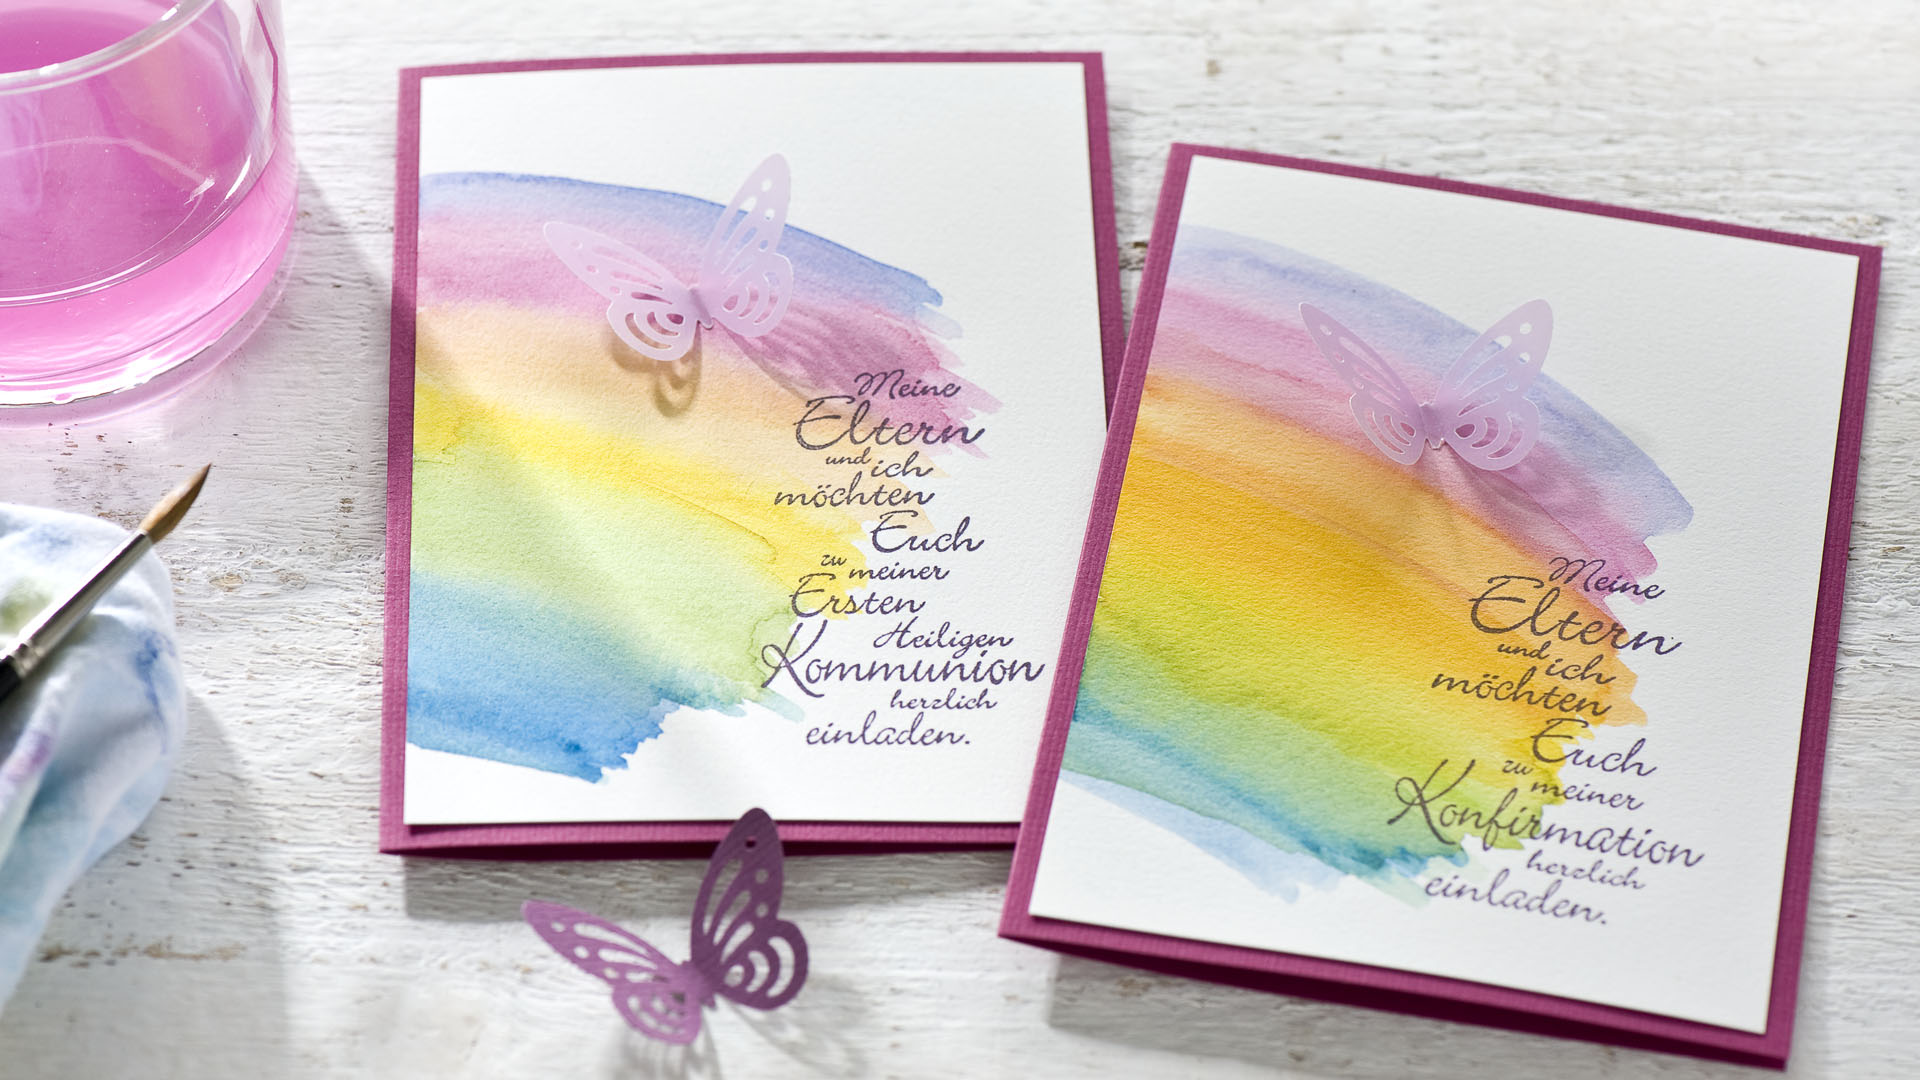 Diy einladung kommunion konfirmation aquarell schmetterling regenbogen